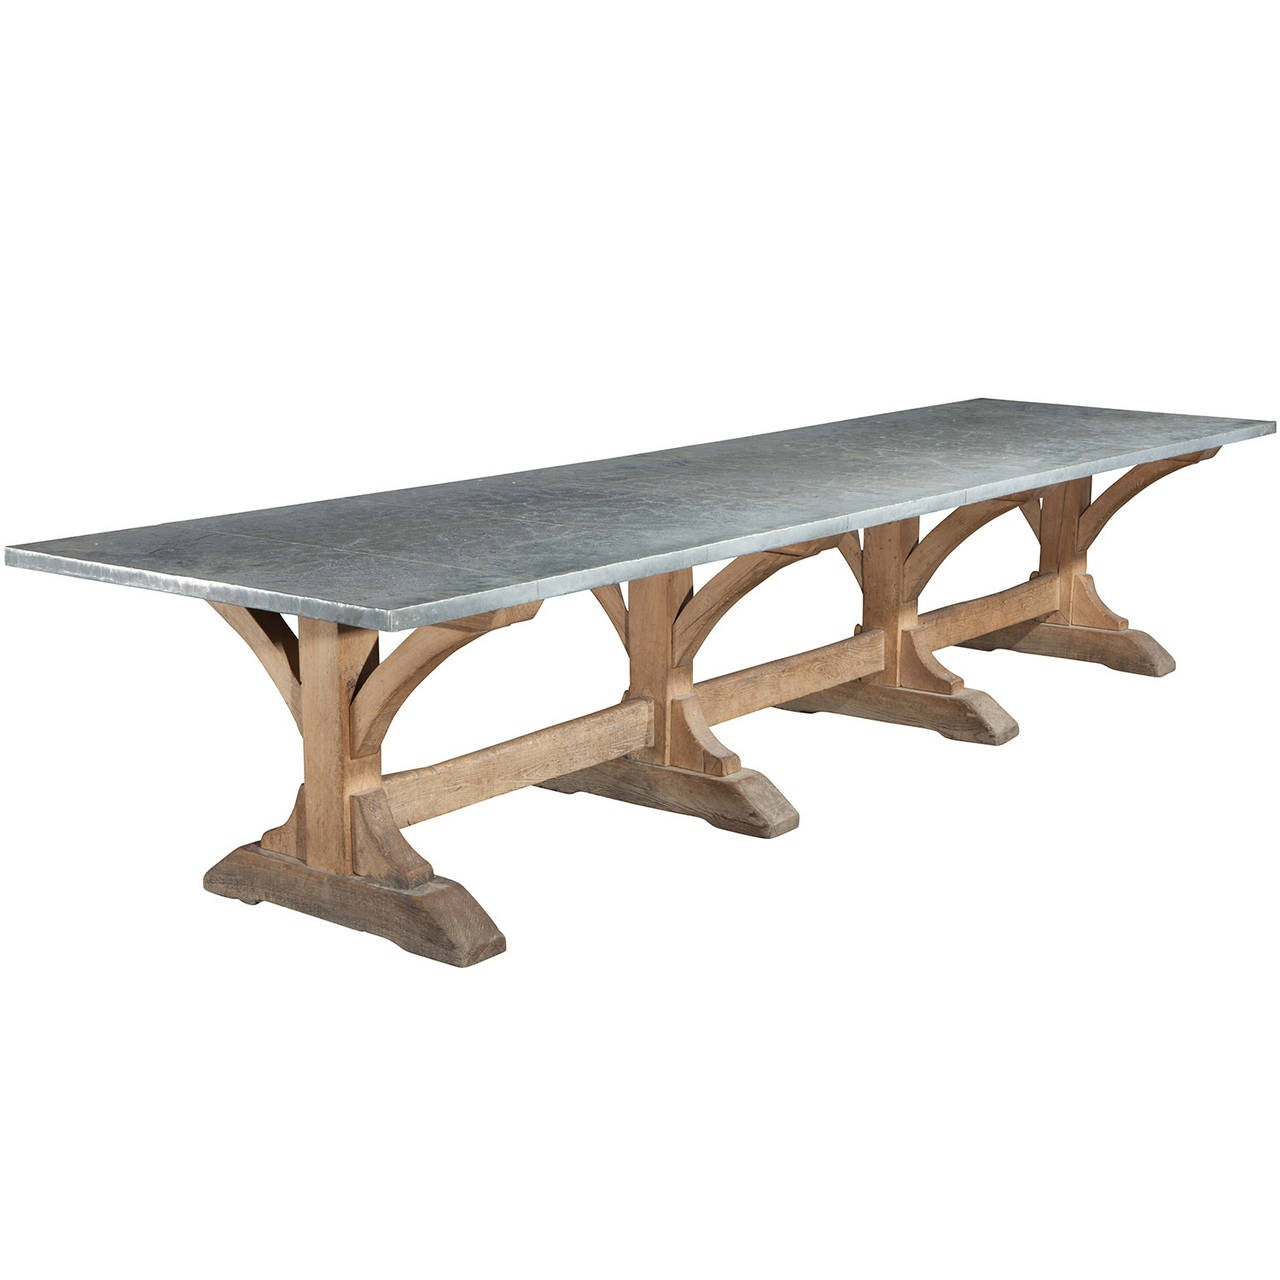 large oak refectory table with zinc top at 1stdibs